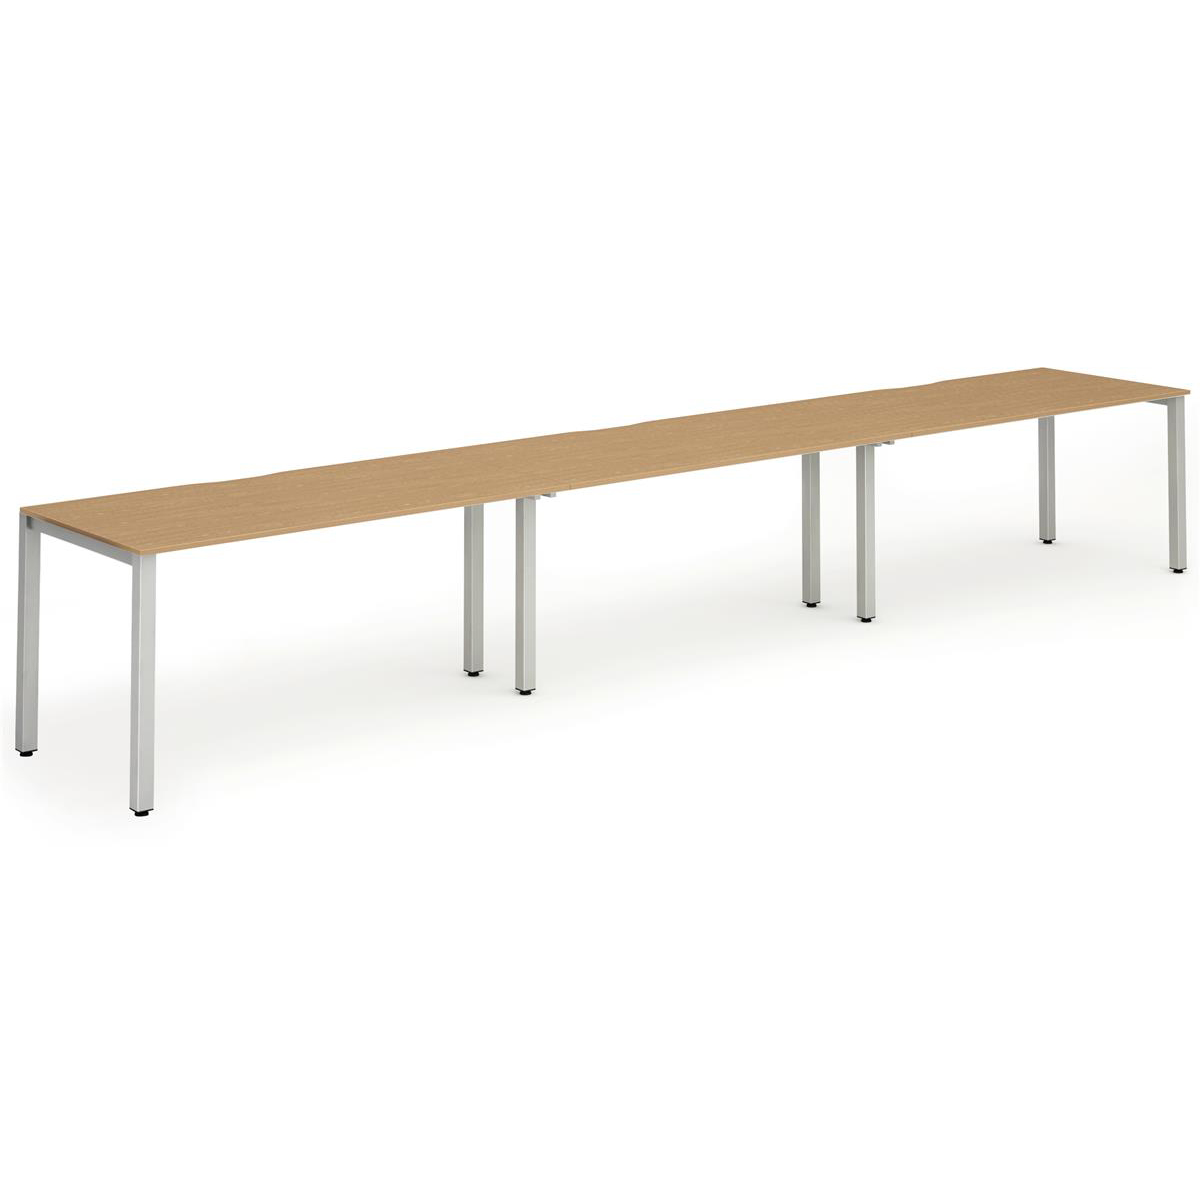 Trexus Bench Desk 3 Person Side to Side Configuration Silver Leg 4800x800mm Oak Ref BE408